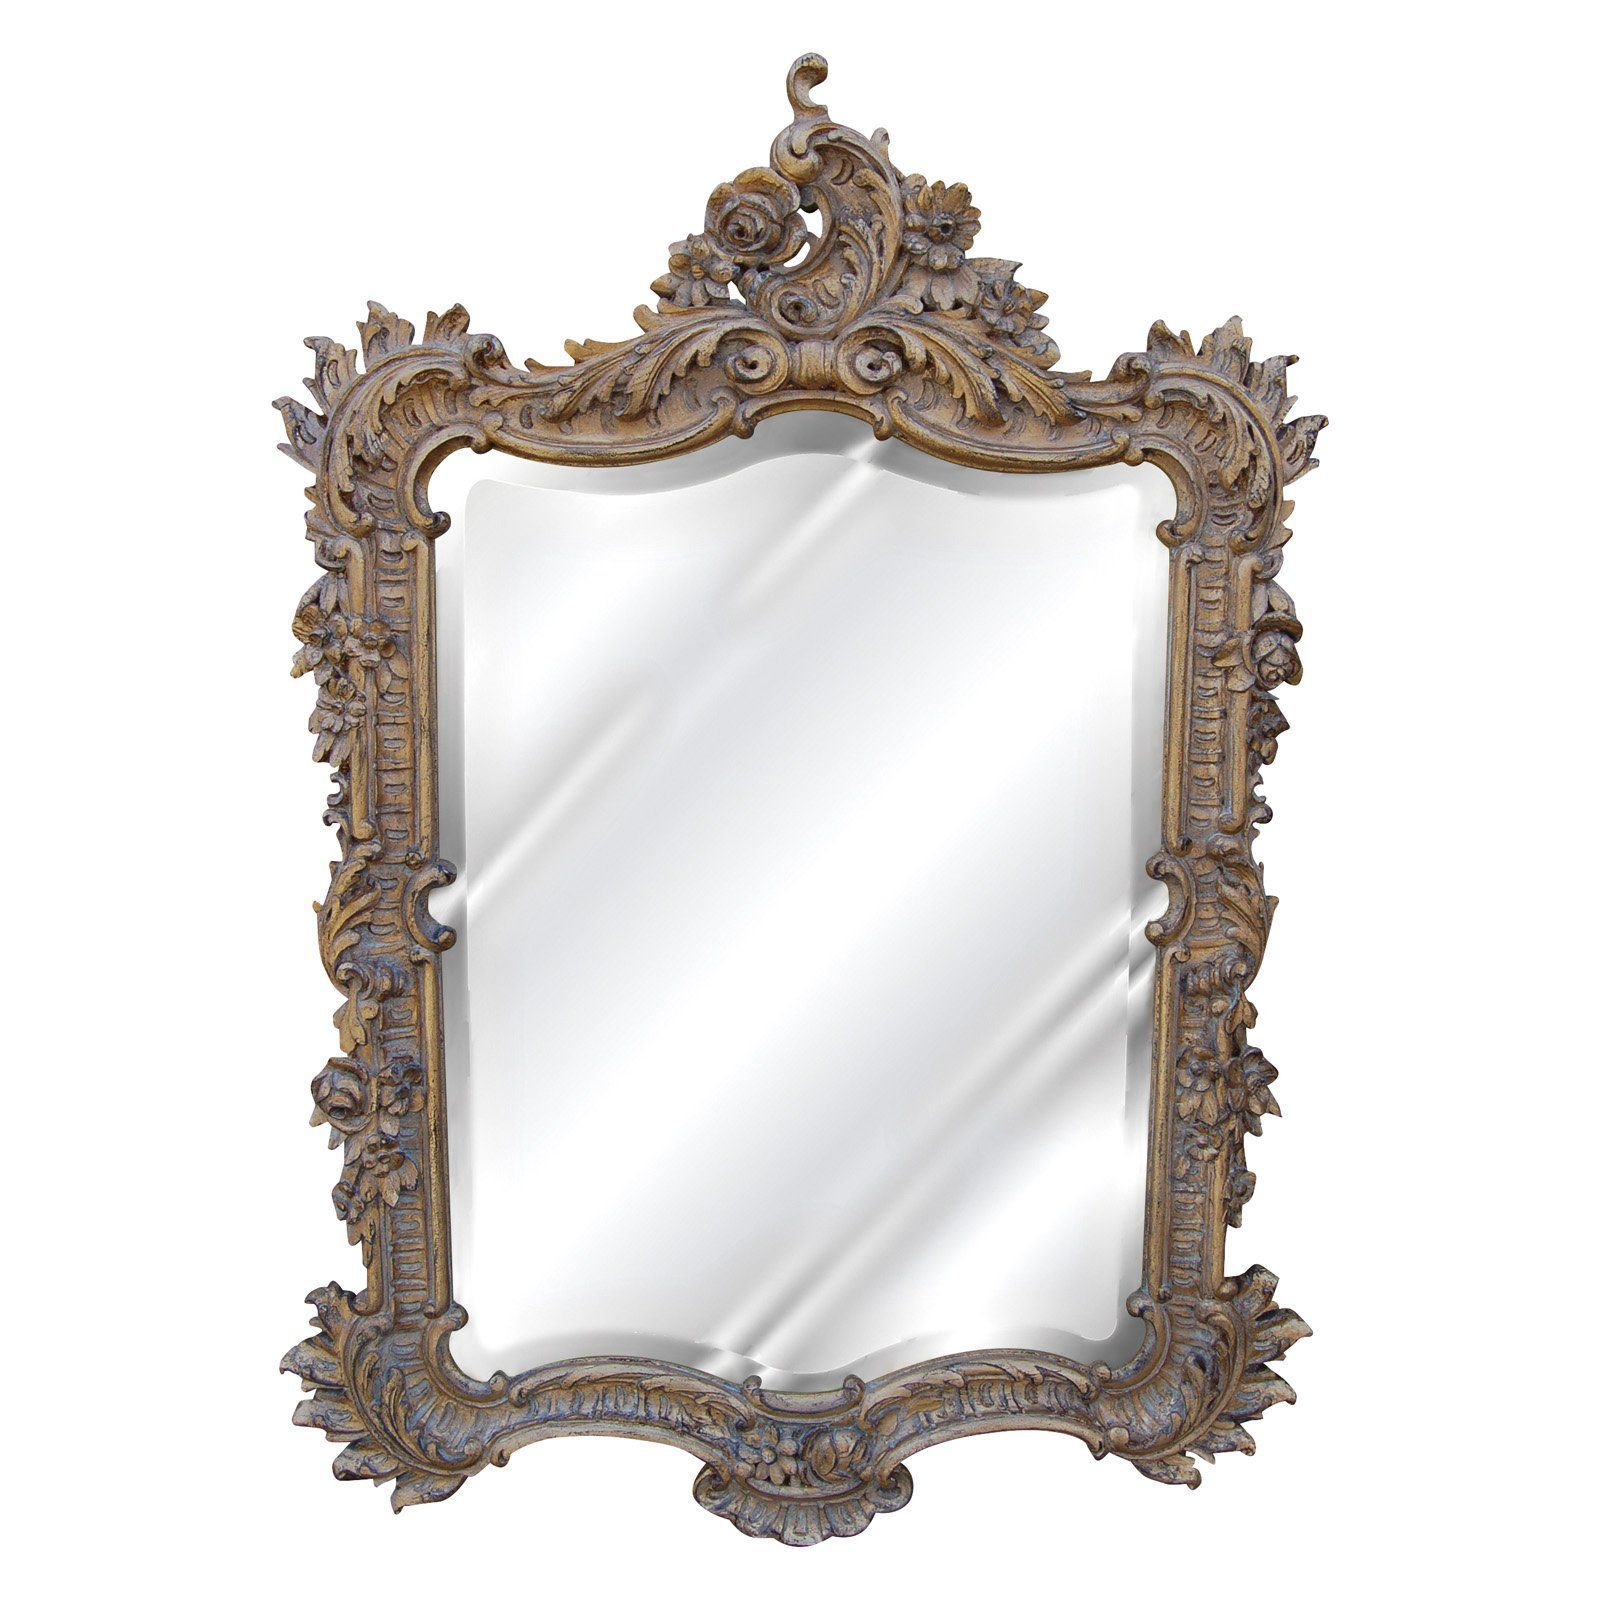 Hickory Manor House Ornate English Mirror 27w X 38h In 7138